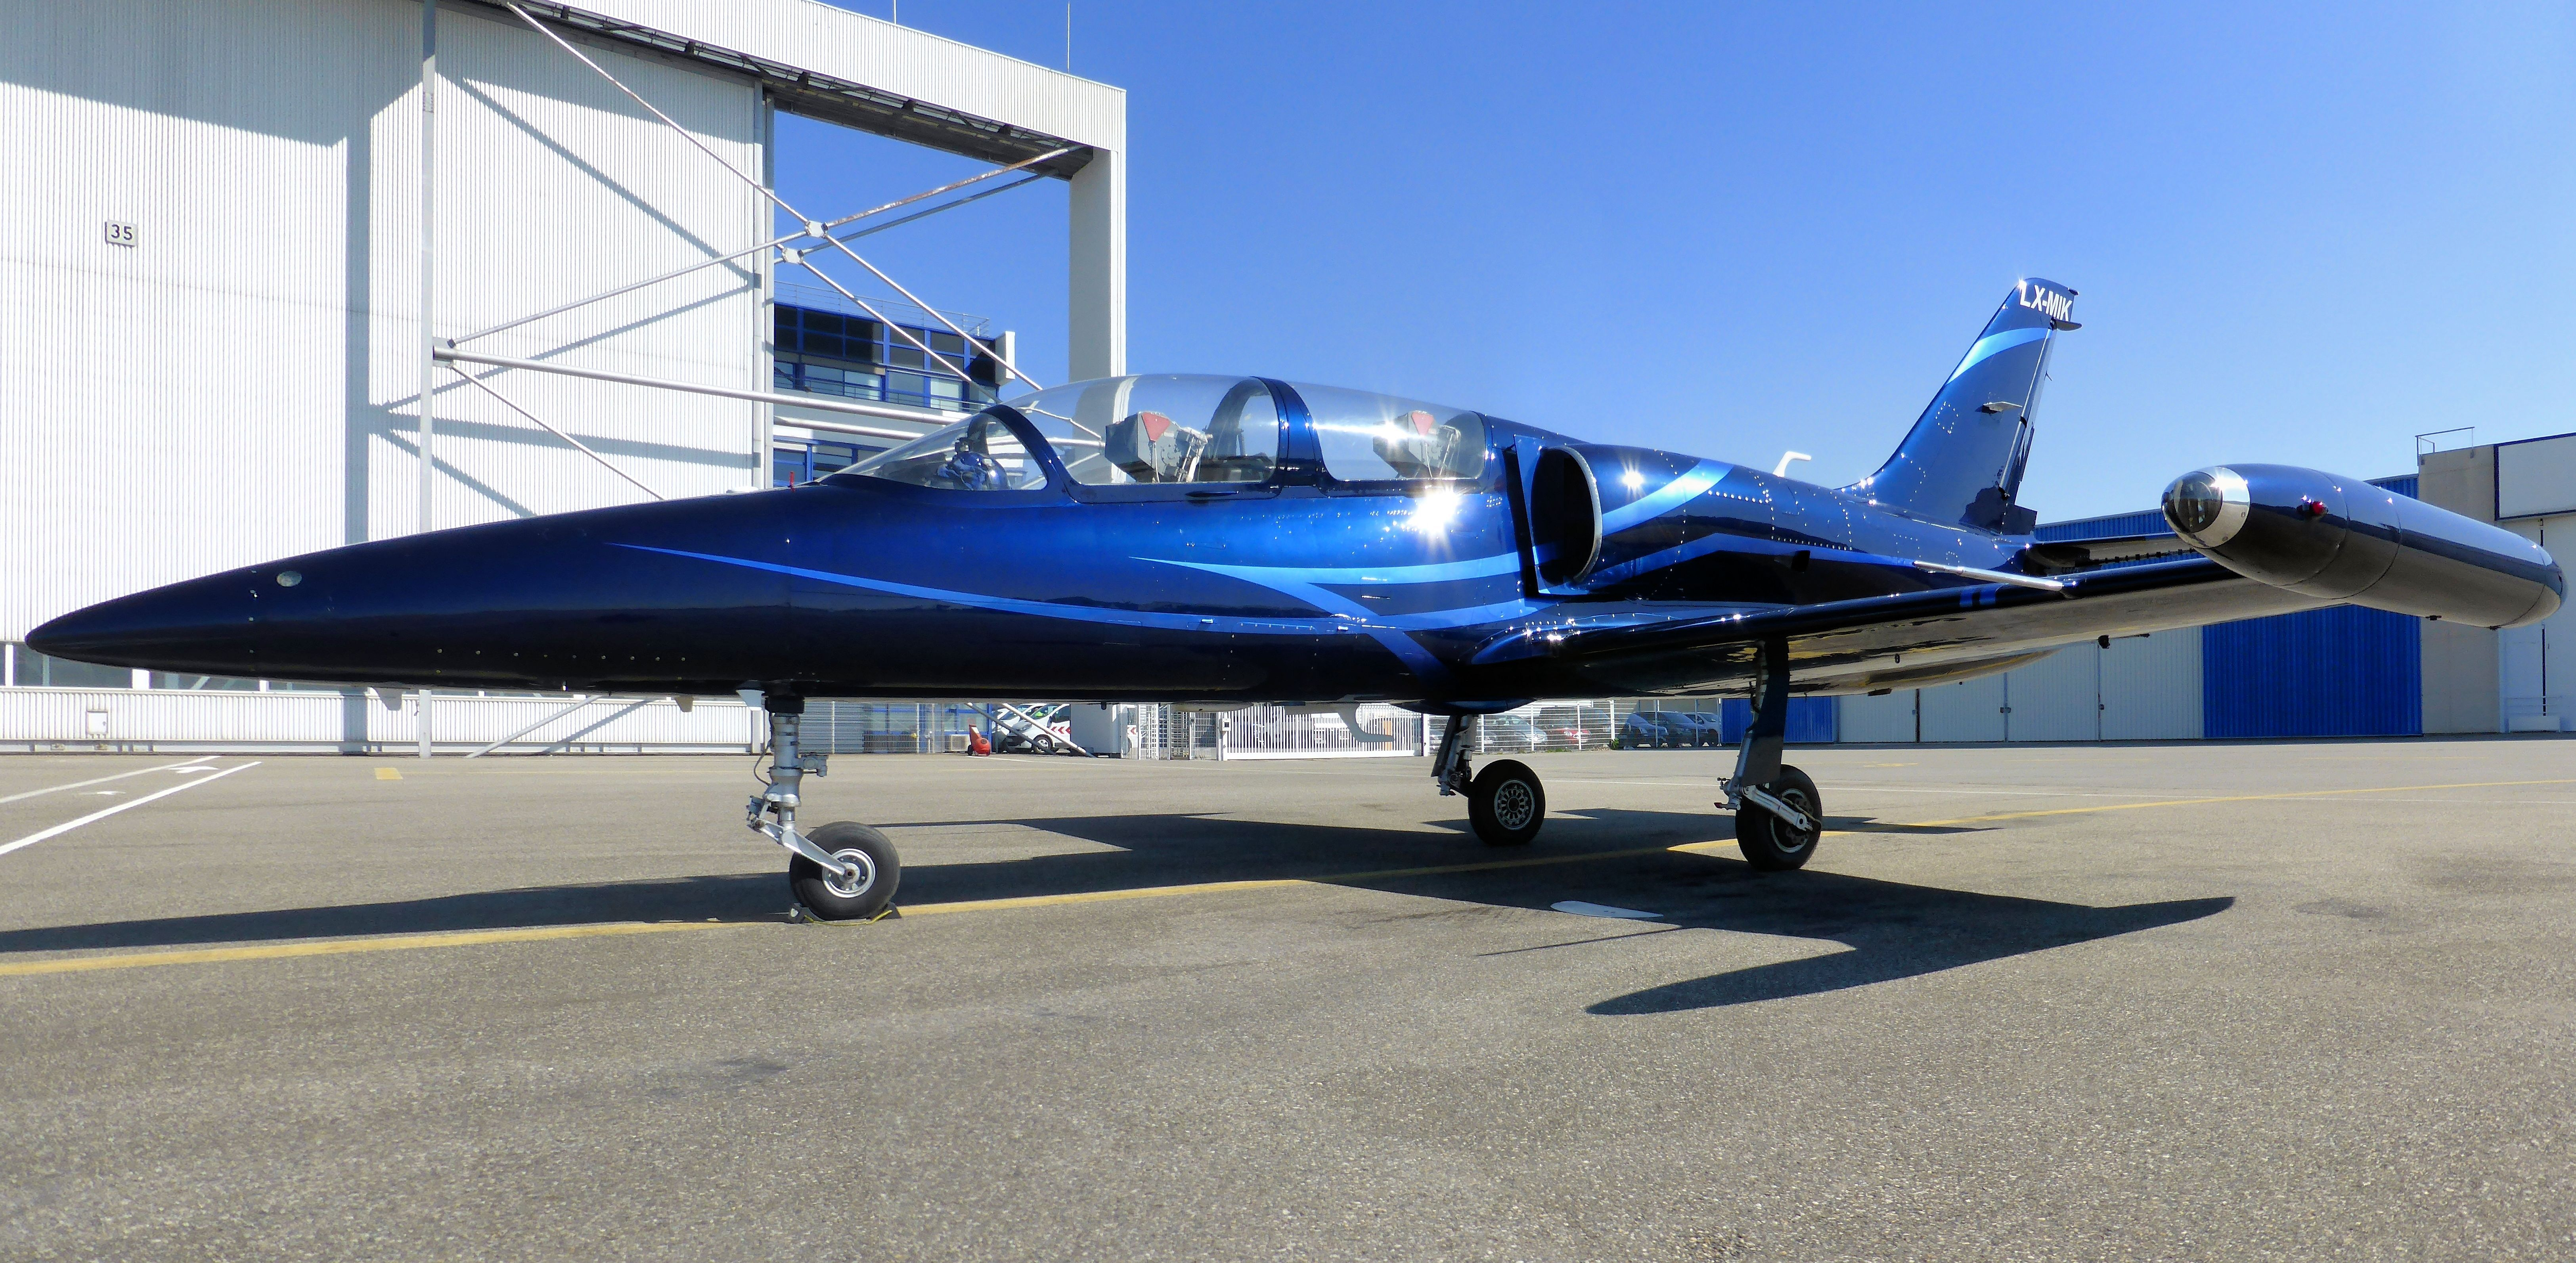 Britten norman as the company s official paint scheme design company - Lx Mik Wearing A Beautiful New Color Scheme